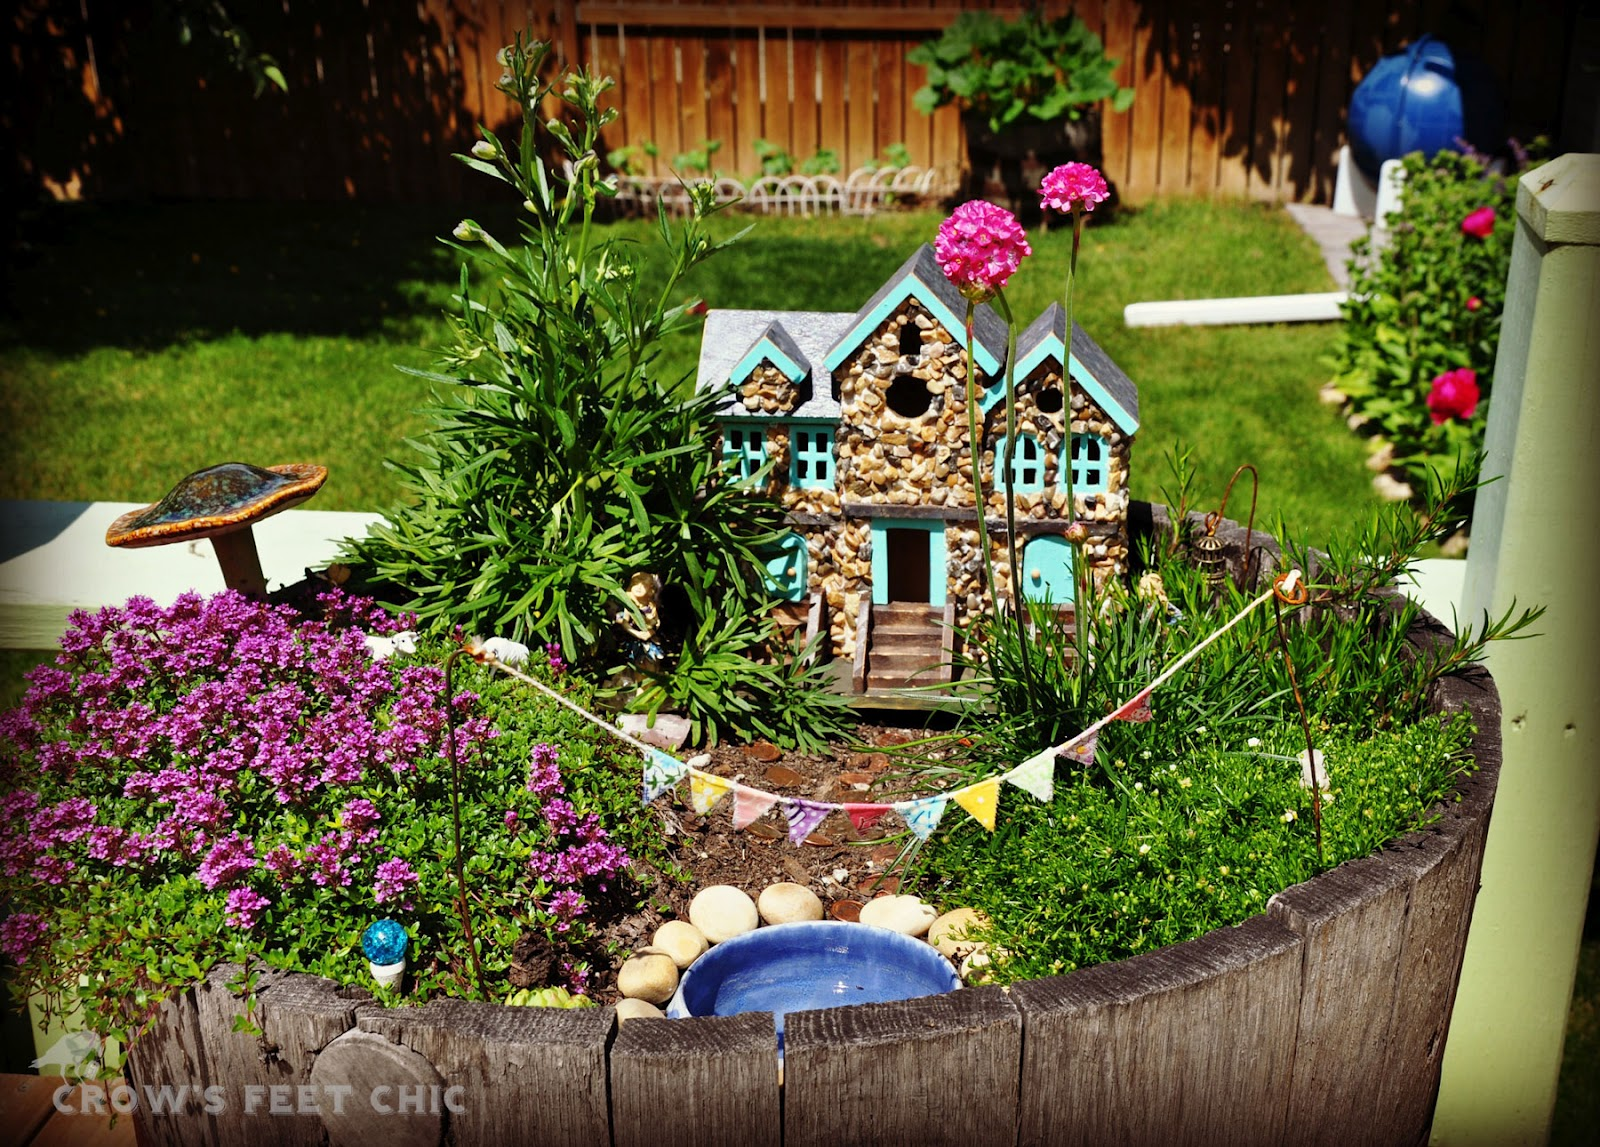 Gnome In Garden: Better Gnomes And Fairy Gardens